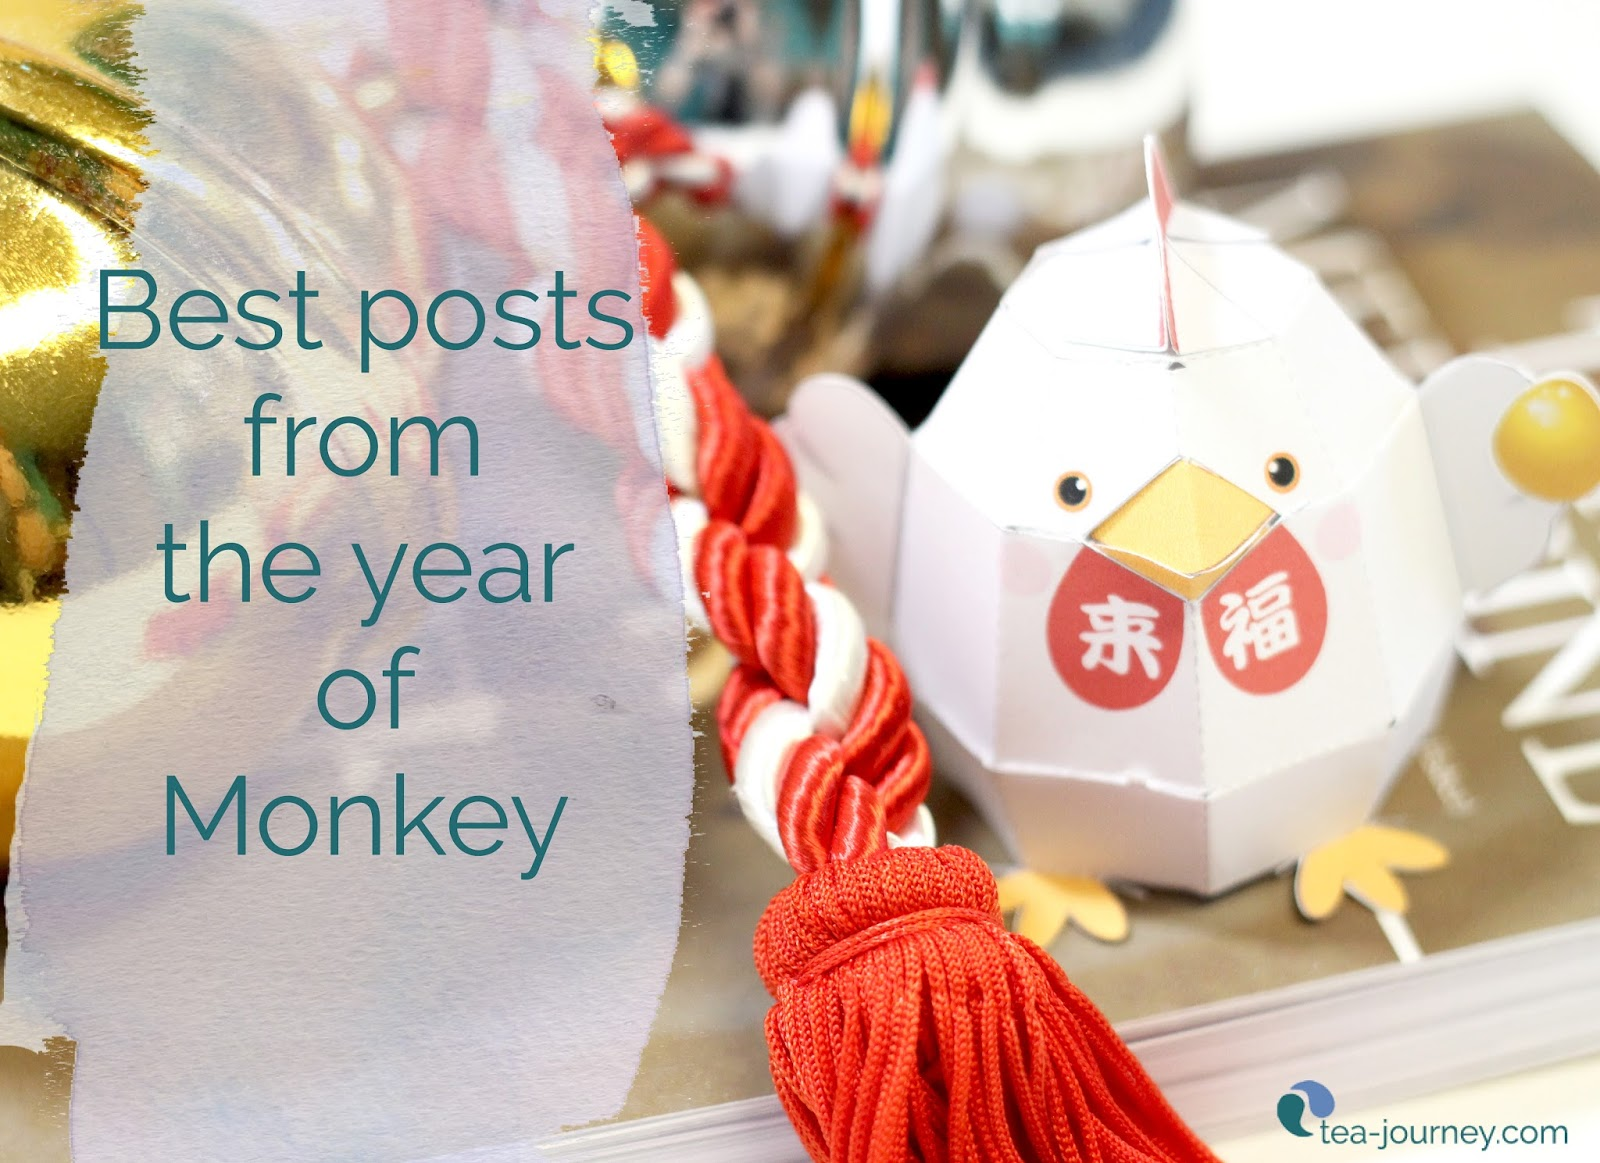 Year of the Monkey had many ups and downs, but here is the best posts from that year. Best luck in the new Lunar New Year of the Rooster, in your life, tea, spiritual life and that you seek creativity everywhere.